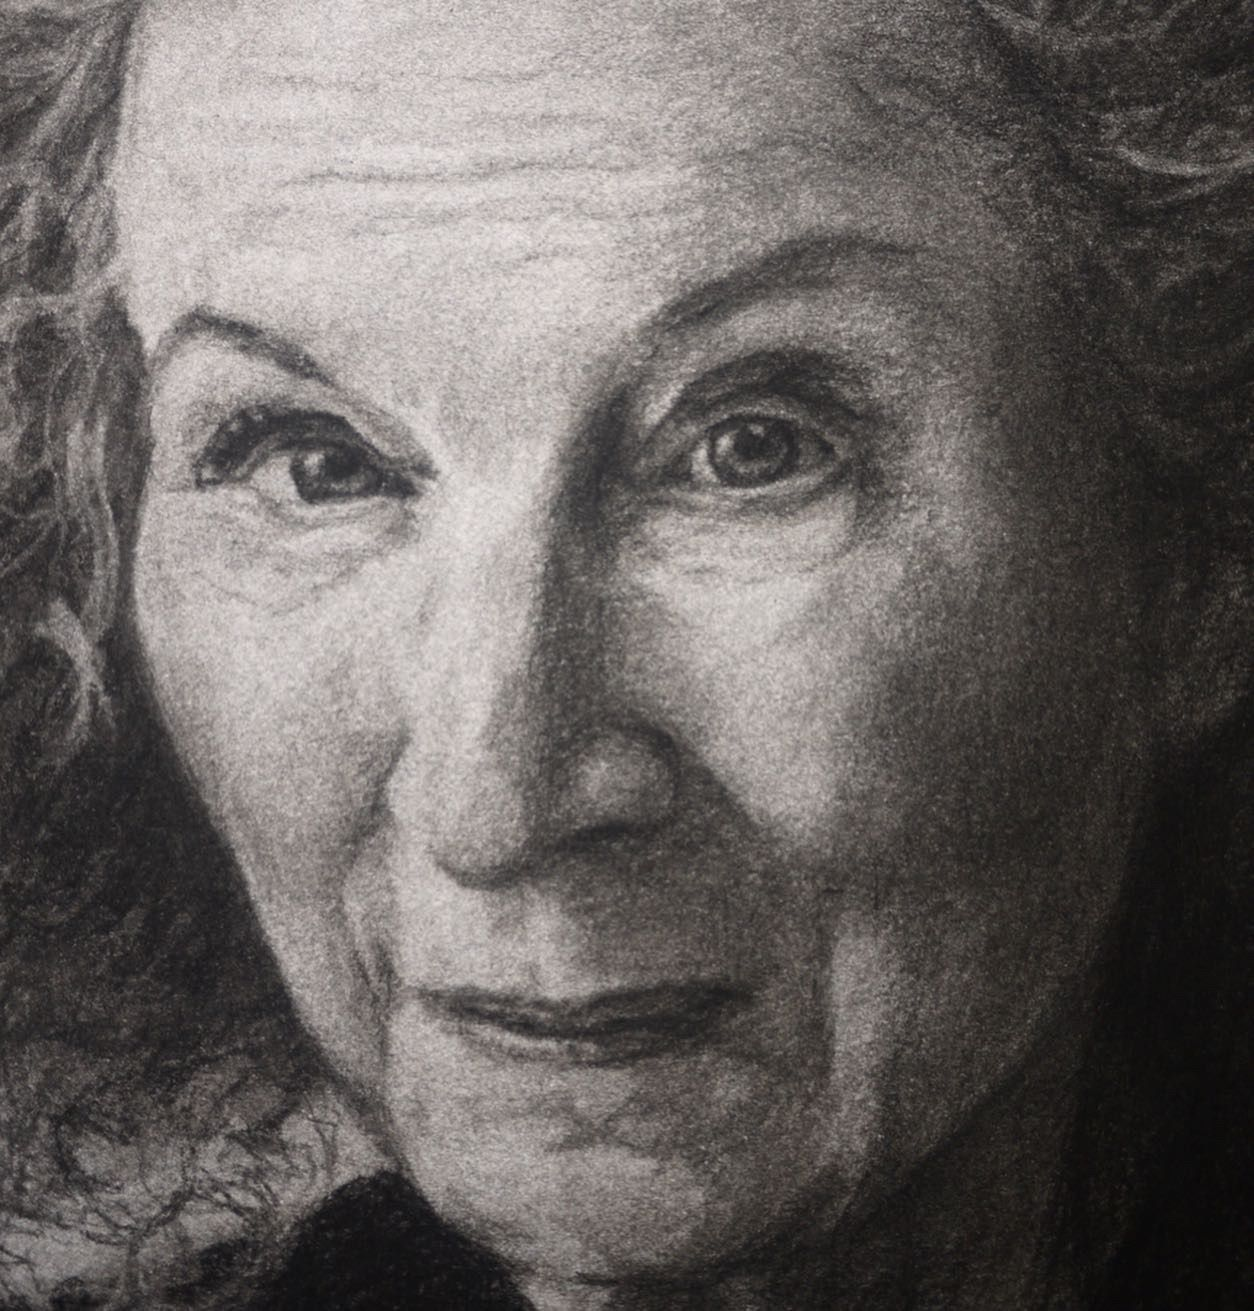 Rebecca Holton - 'Margaret Atwood' (detail) #margaretatwood Detail from a charcoal drawing of Margaret Atwood by the london artist, Rebecca Holton. #face  #portrait  #portraiture  #portraitdrawing  #margaretatwood  #rebeccaholtonfineart  #rebeccaholton  #peopledrawing  #drawingfaces  #contemporaryart #margaretatwood